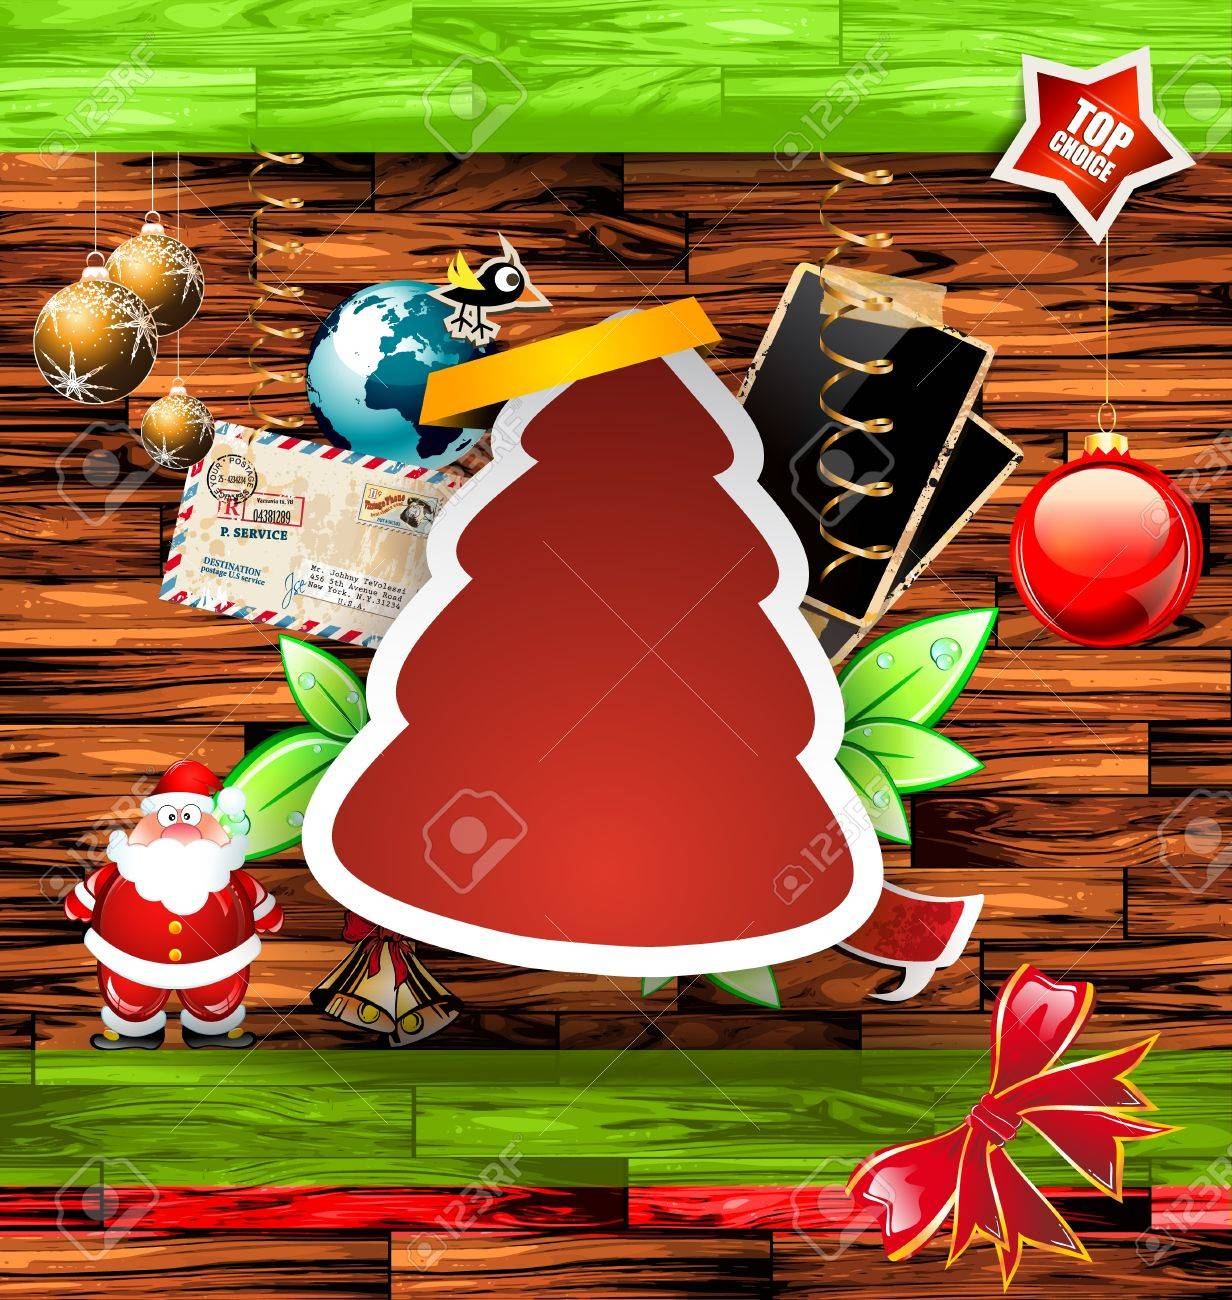 Christmas Vintage scrapbook composition with old style distressed postage design elements and antique photo frames plus some post stickers. Stock Vector - 16004700